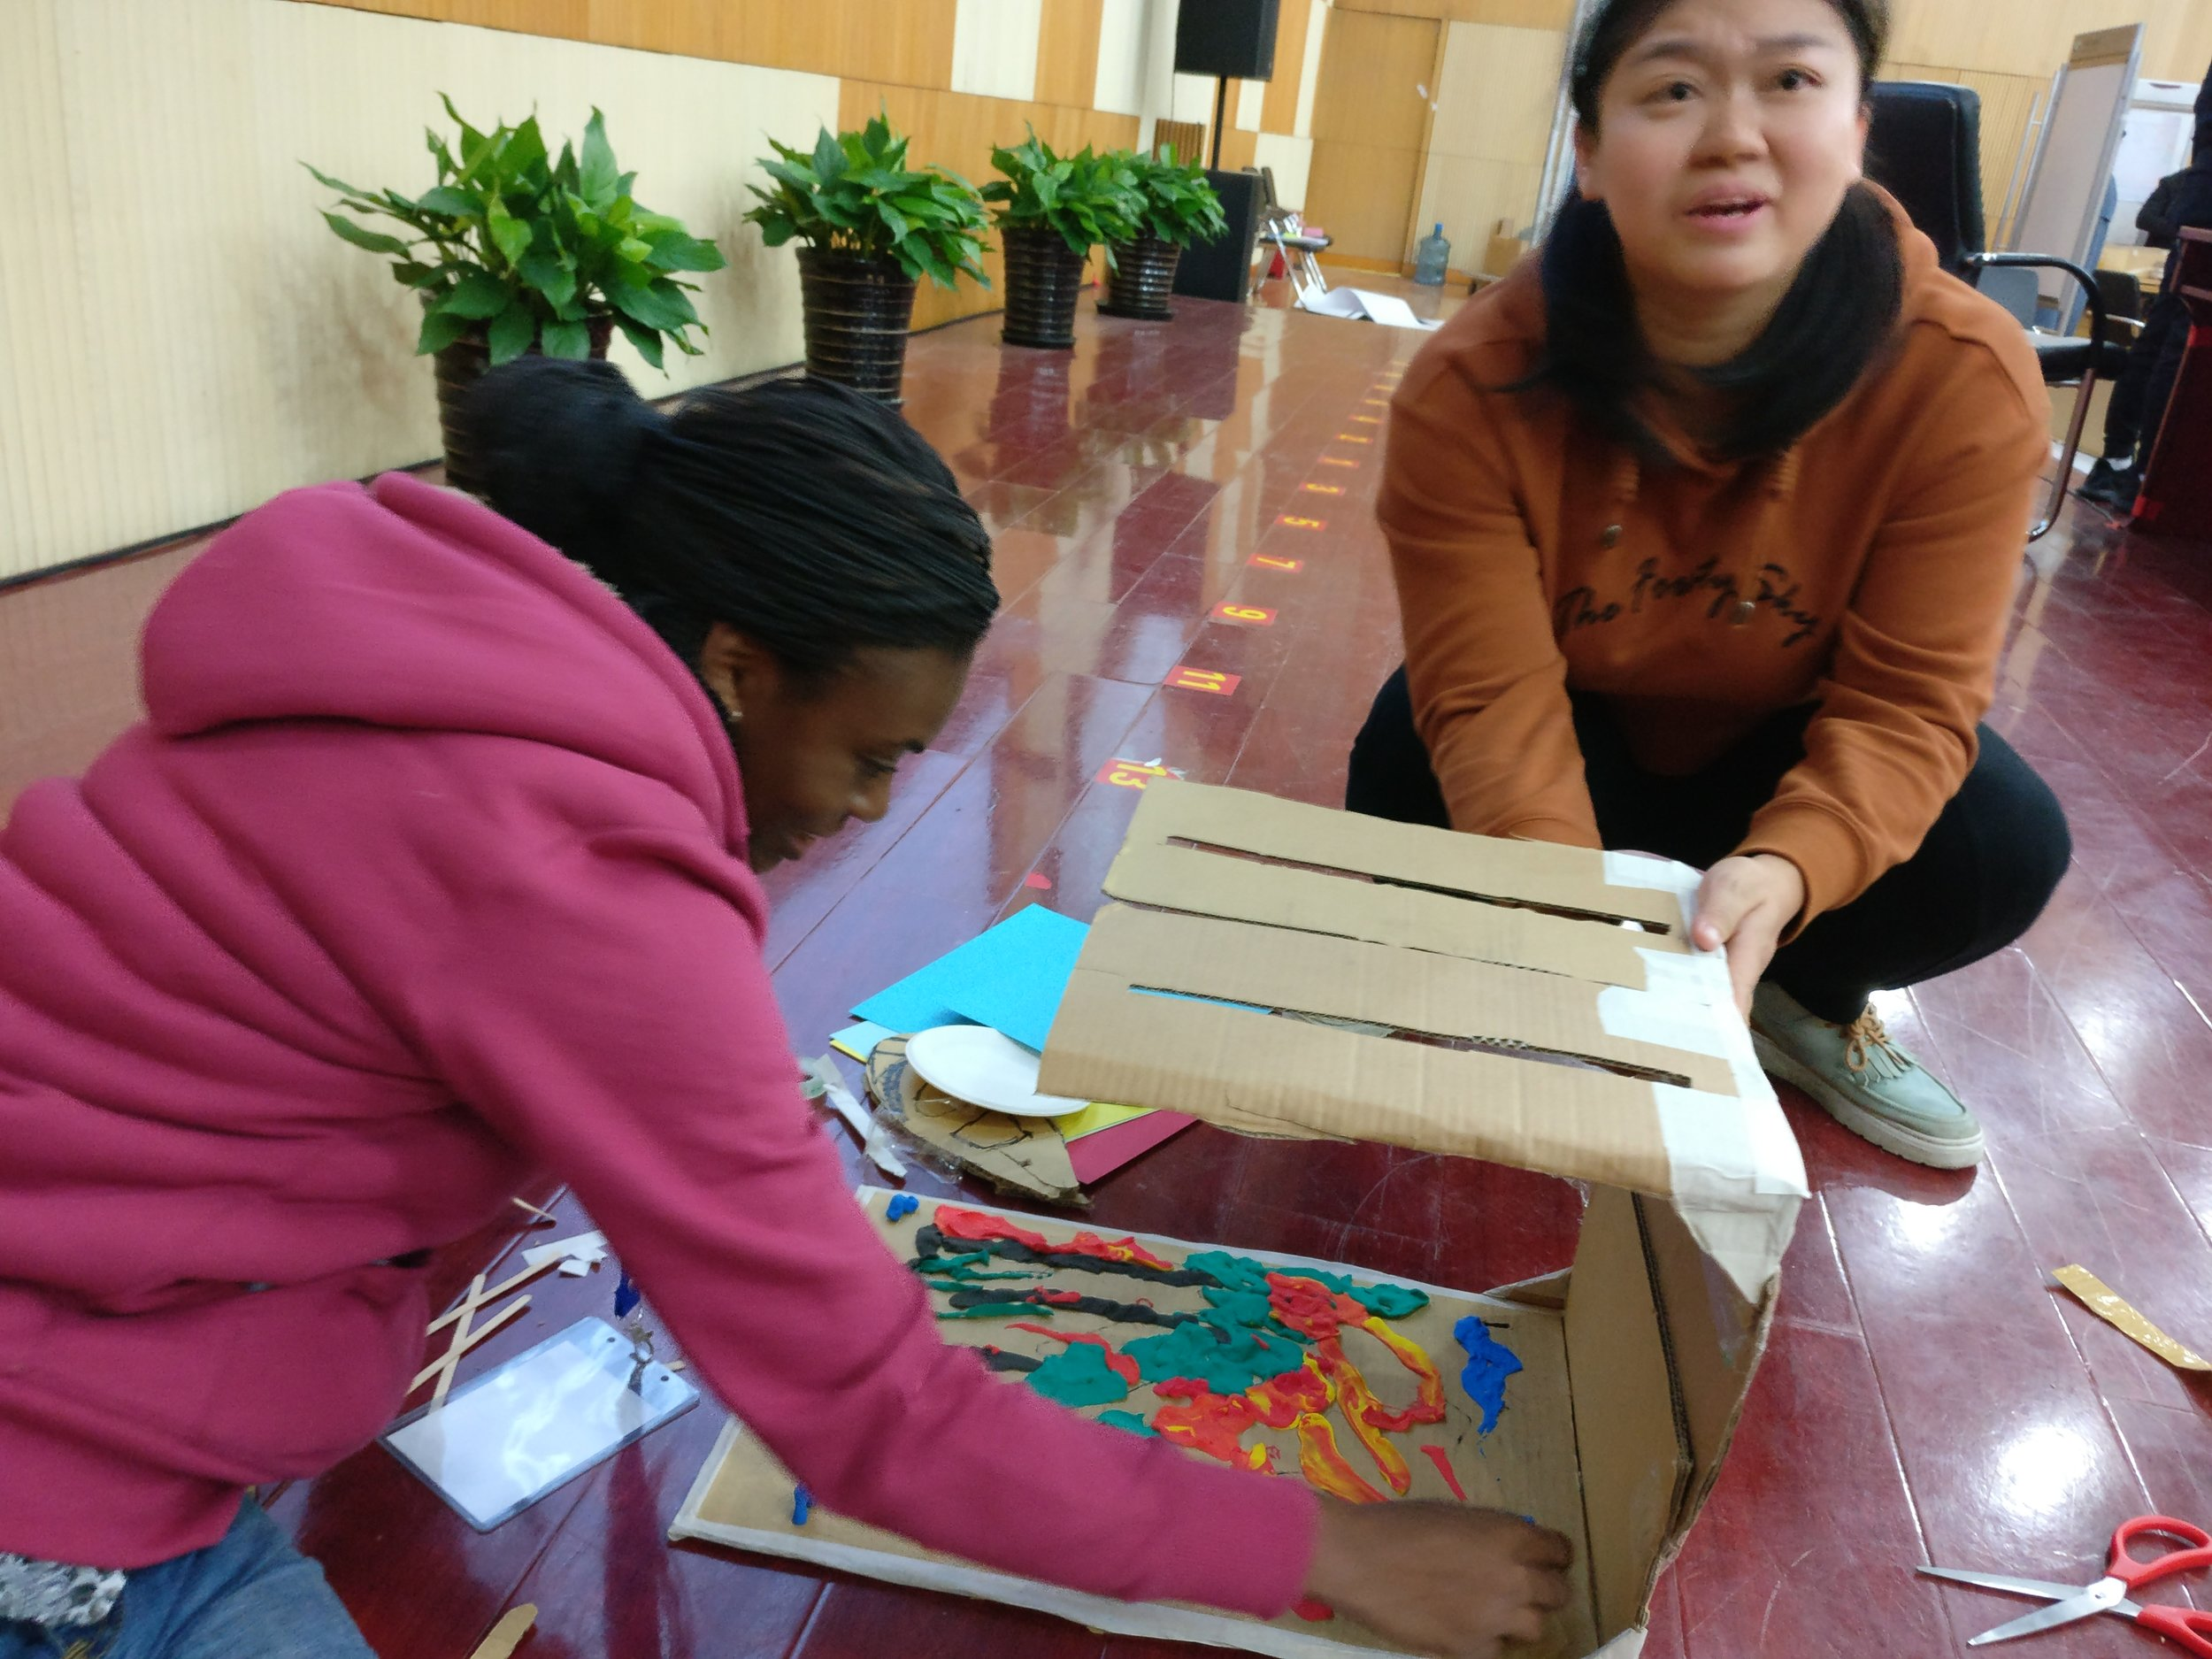 Ruiting Li setting up a prototype for an exhibit about natural catastrophies.